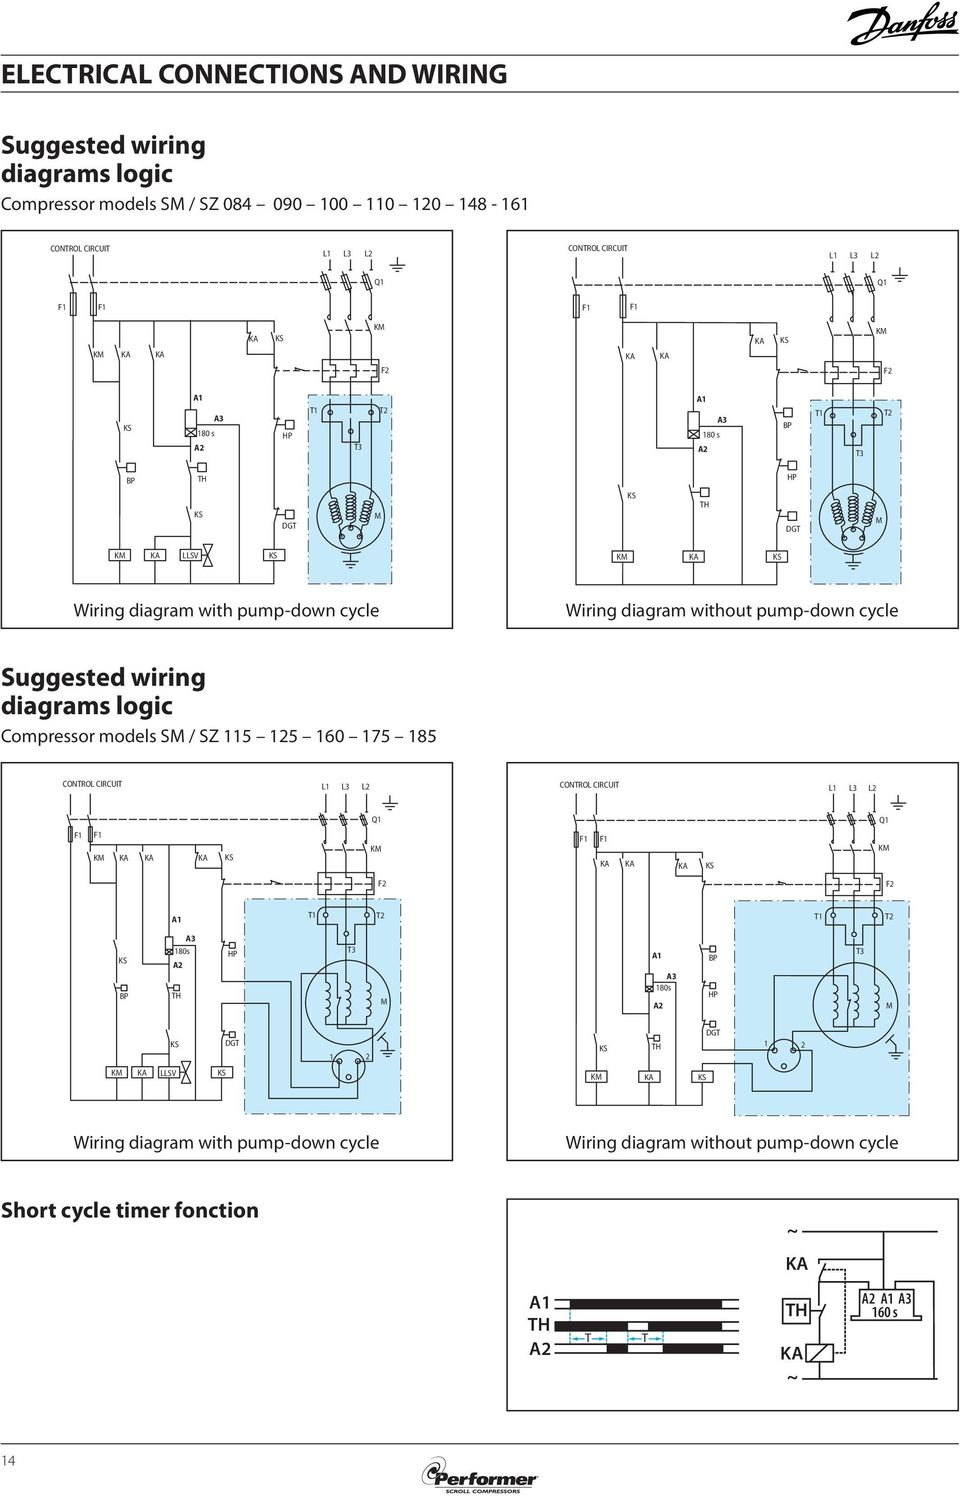 Selection Application Guidelines Performer Scroll Compressors Wiring Diagrams For Ka Pump Down Cycle 85 52 019 A Suggested Logic Compressor Models Sm